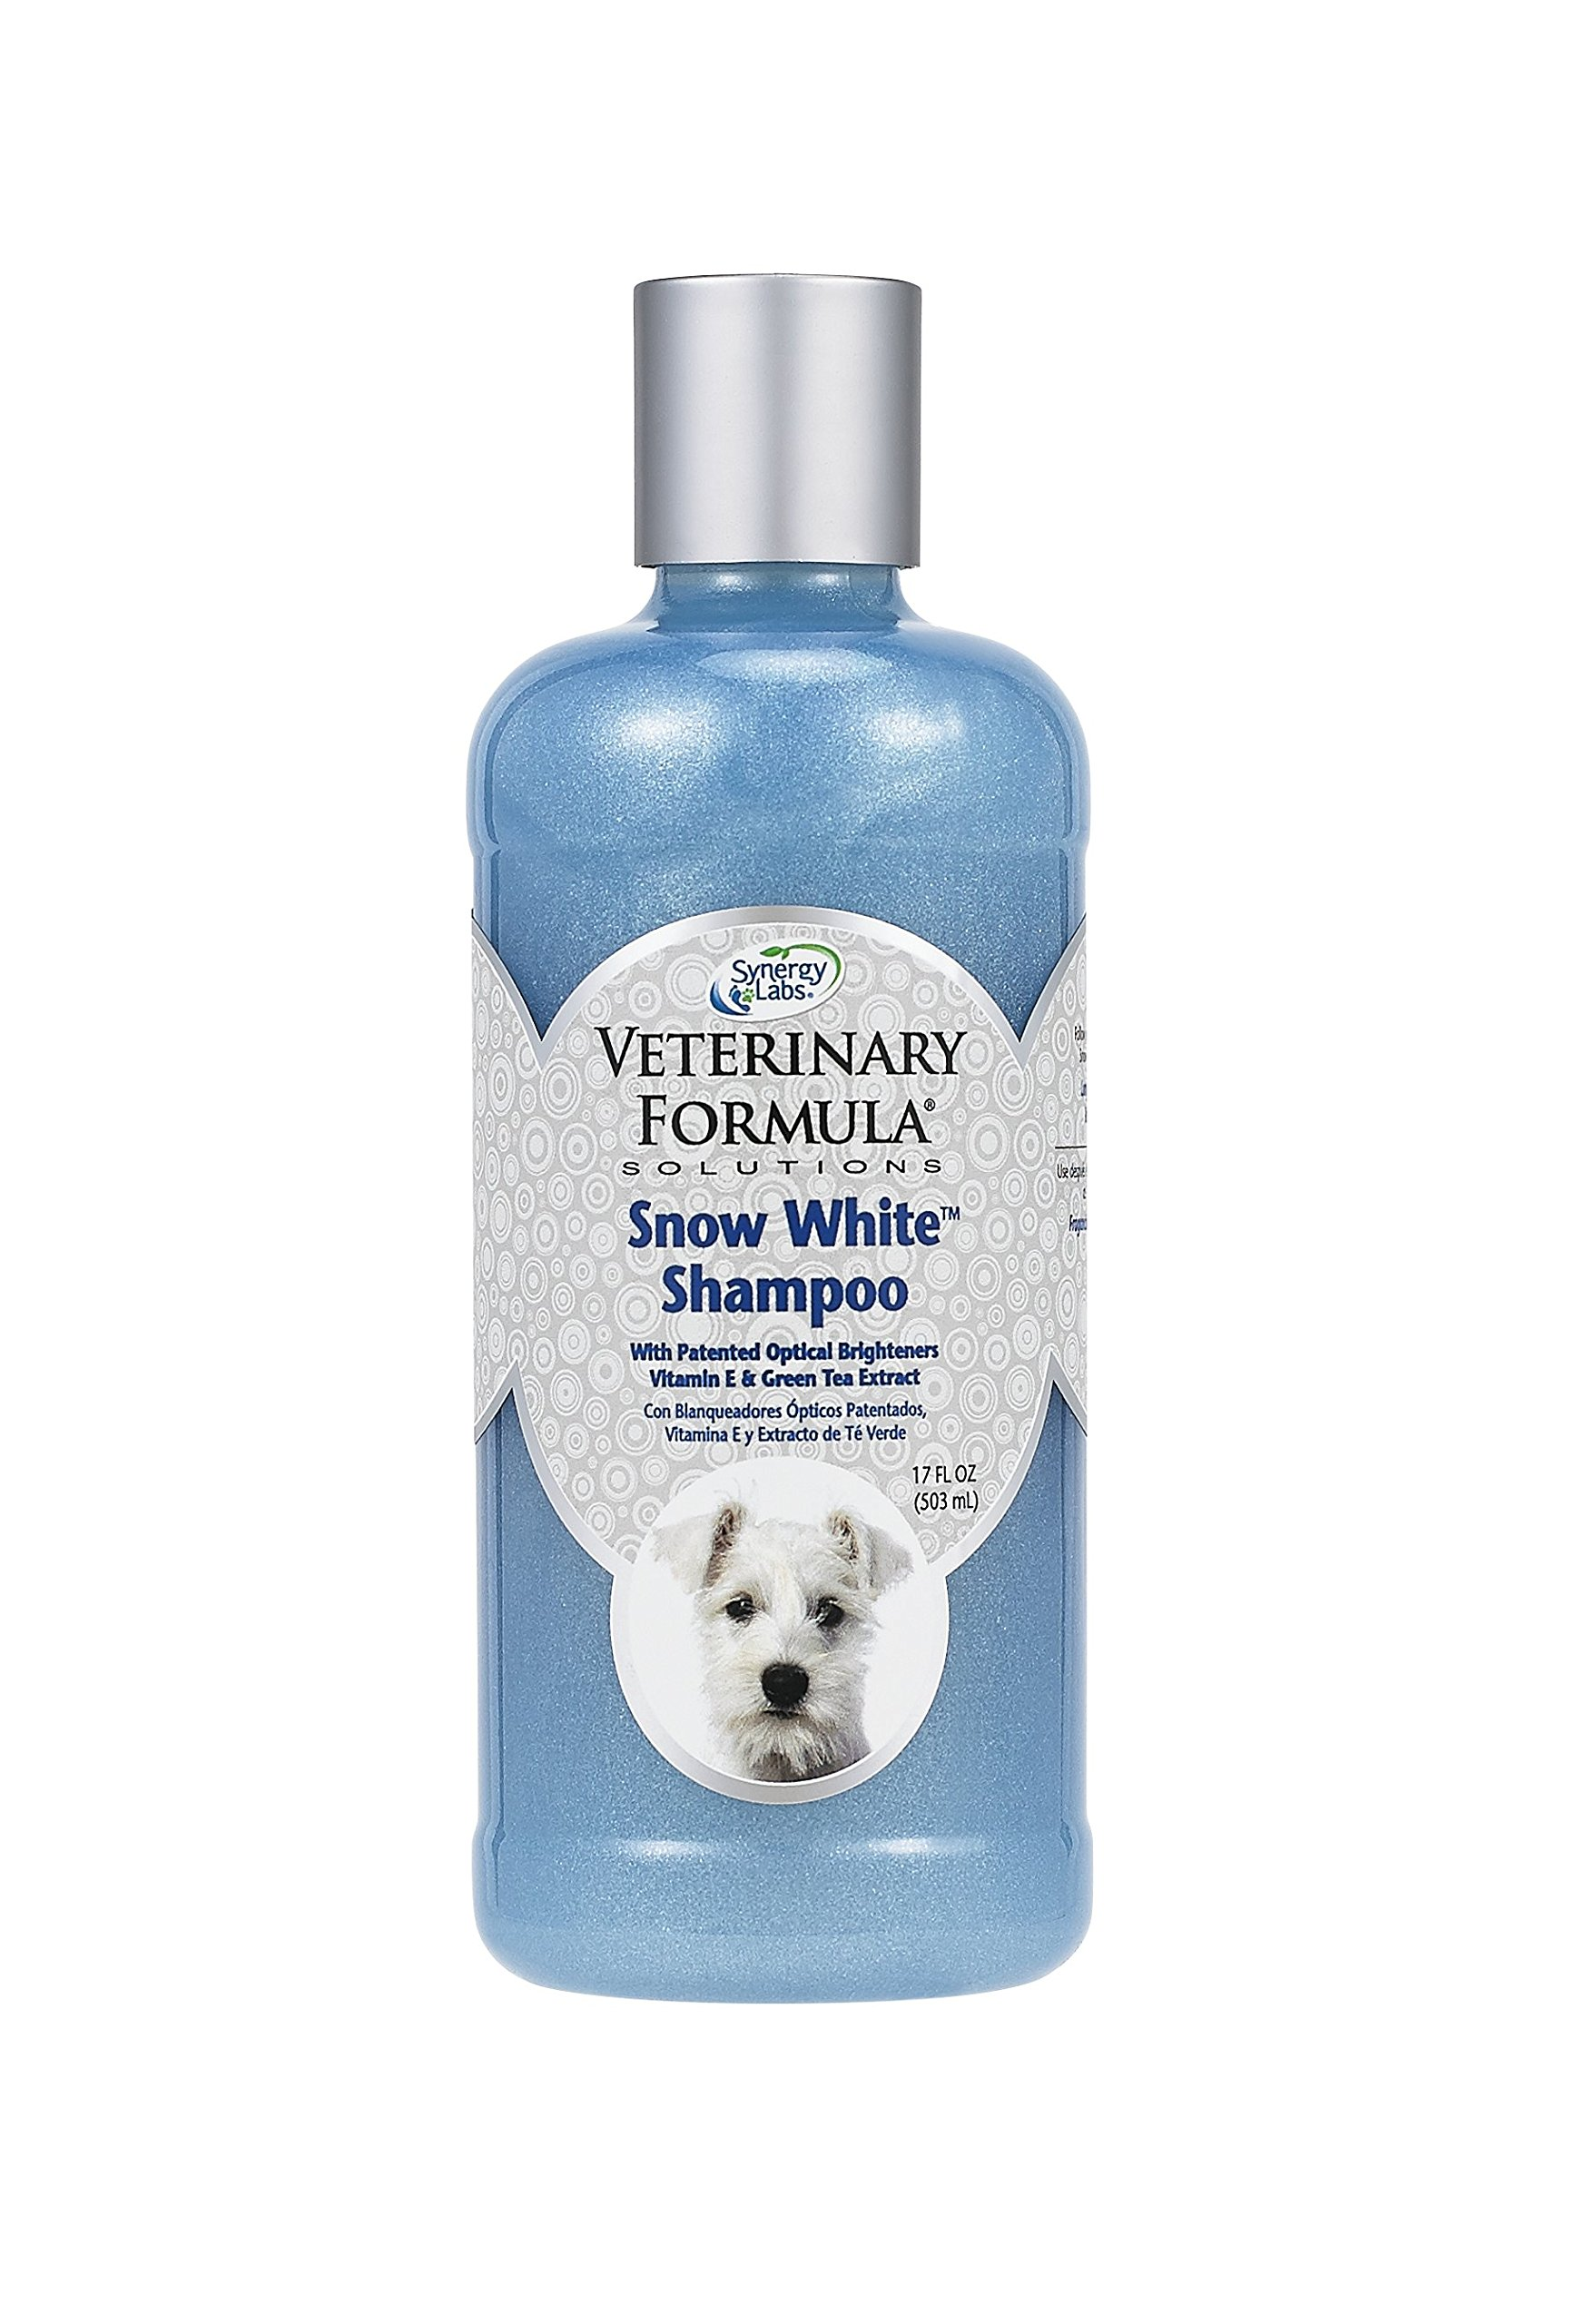 Veterinary Formula Solutions Snow White Shampoo for Dogs and Cats – Safely Remove Stains Without Bleach or Peroxide –Gently Cleanses, Deodorizes and Brightens White Coat – Fresh Scent (17oz)